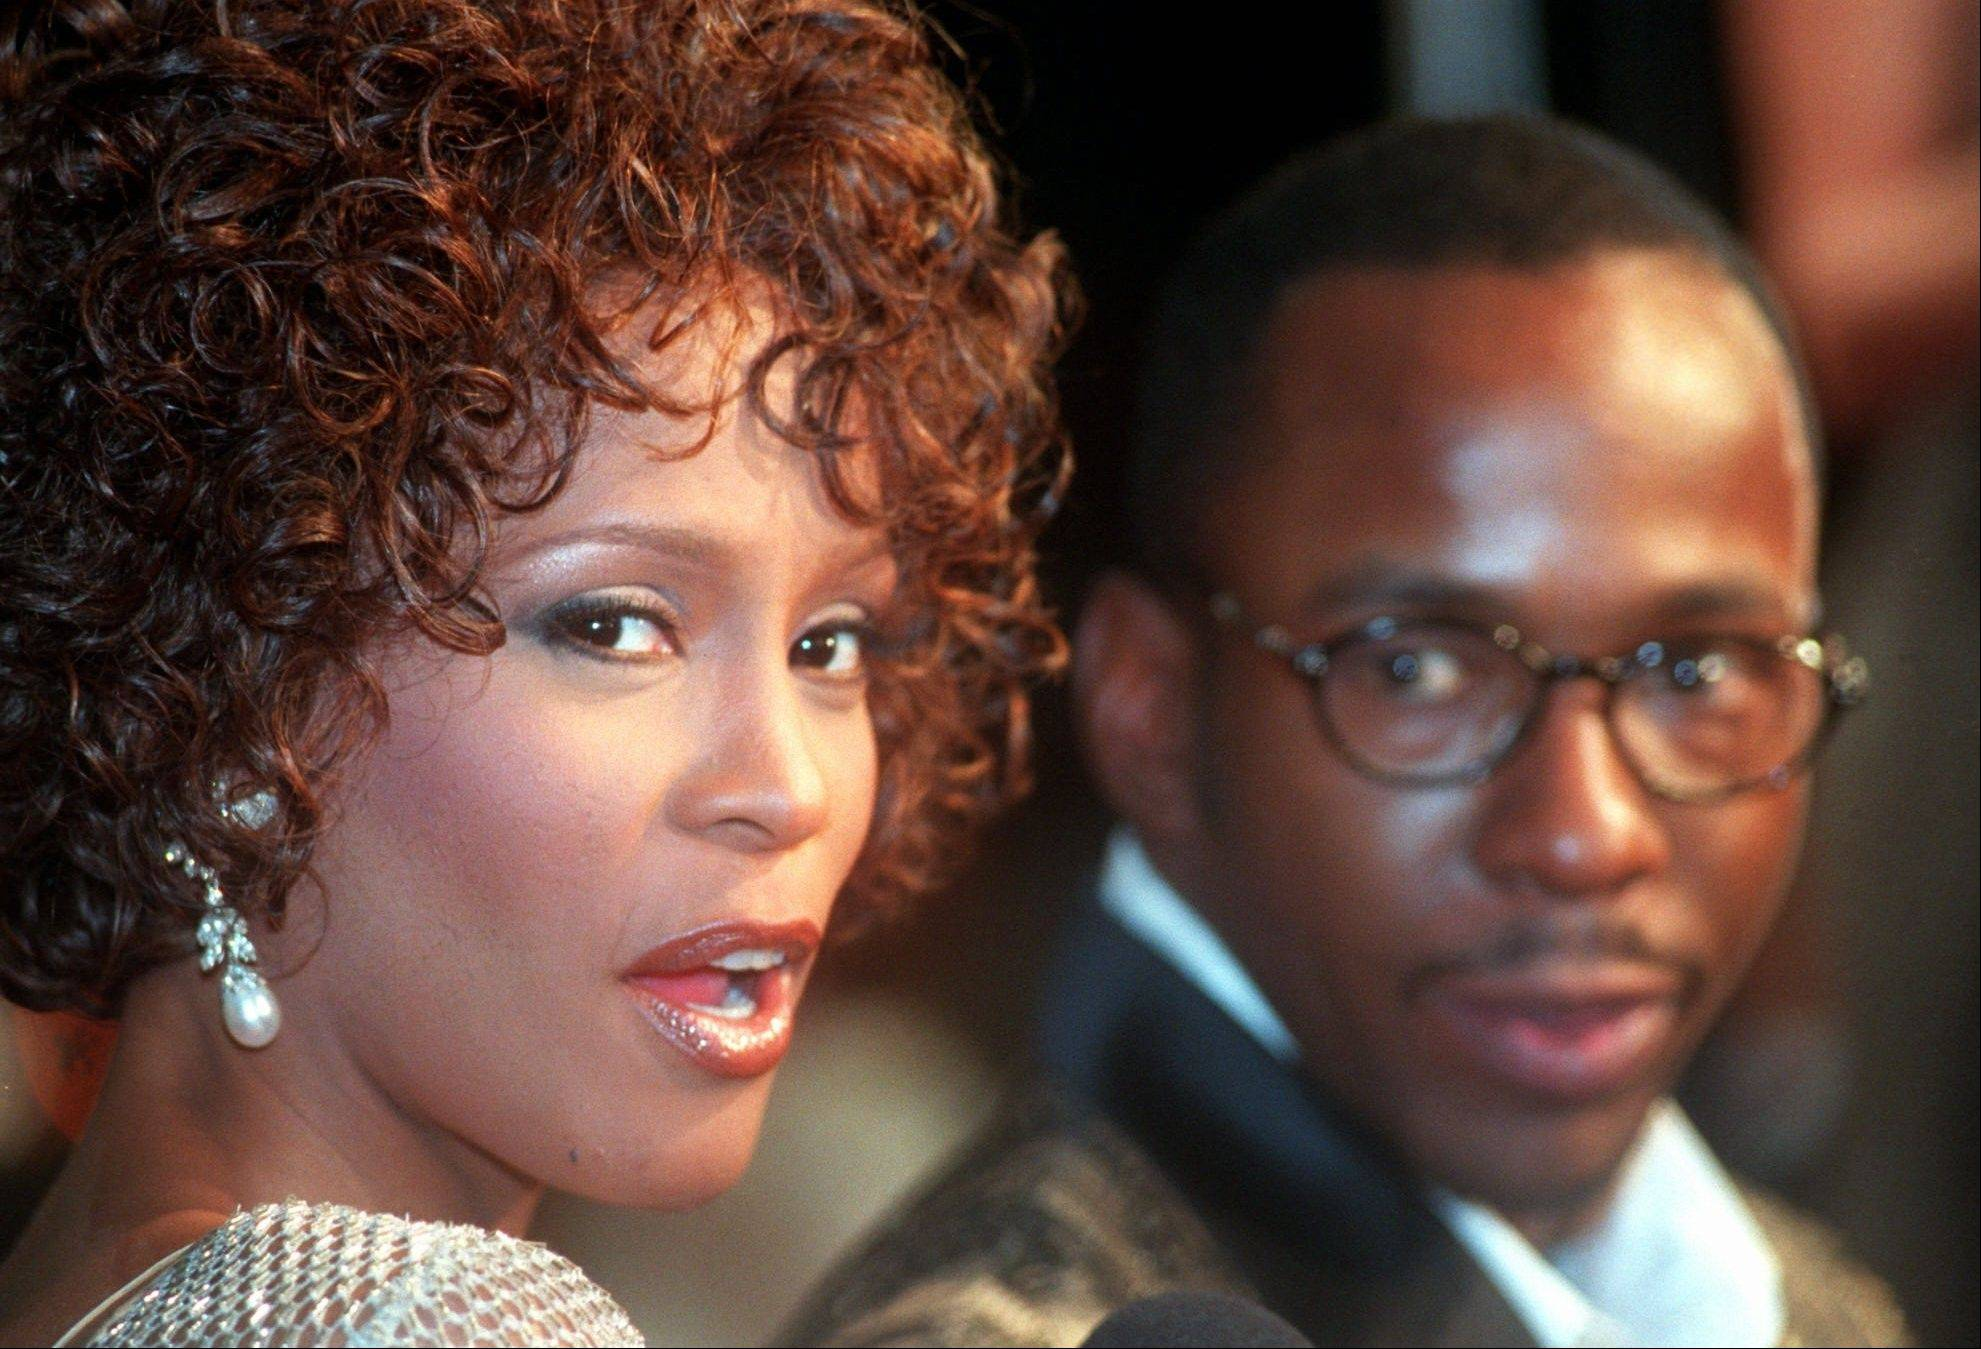 "In this Oct. 13, 1997 file photo, Whitney Houston looks over her shoulder as her husband Bobby Brown looks to her at a film premiere in Los Angeles. Houston's mother, Cissy, says she believes her daughter wouldn't have had to fight so hard to stay sober if it weren't for Brown. ""To me, he never seemed to be a help to her in the way she needed,"" Cissy Houston writes."